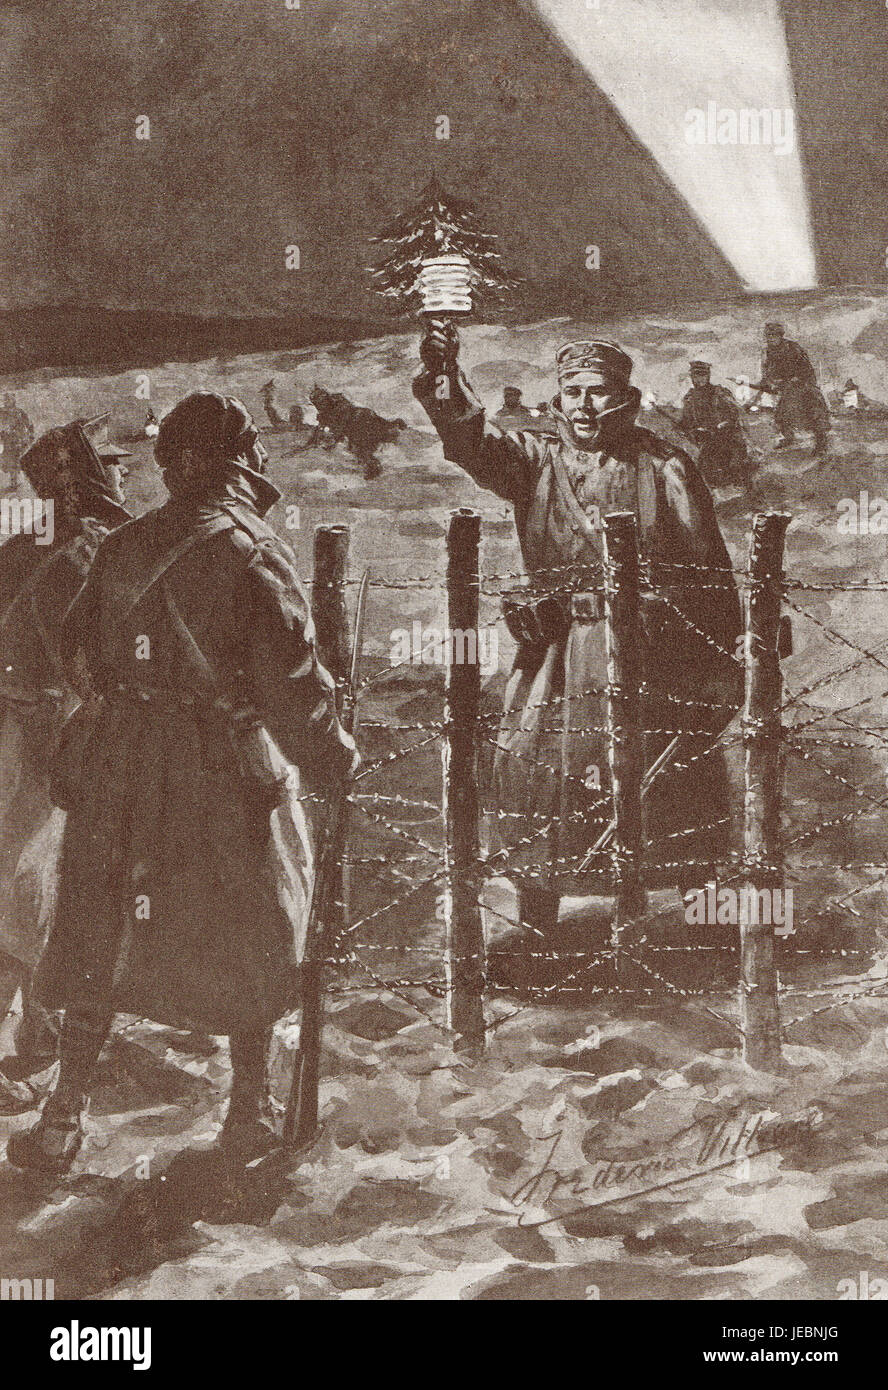 Christmas Truce Of 1914.The Christmas Truce Western Front 1914 Stock Photo